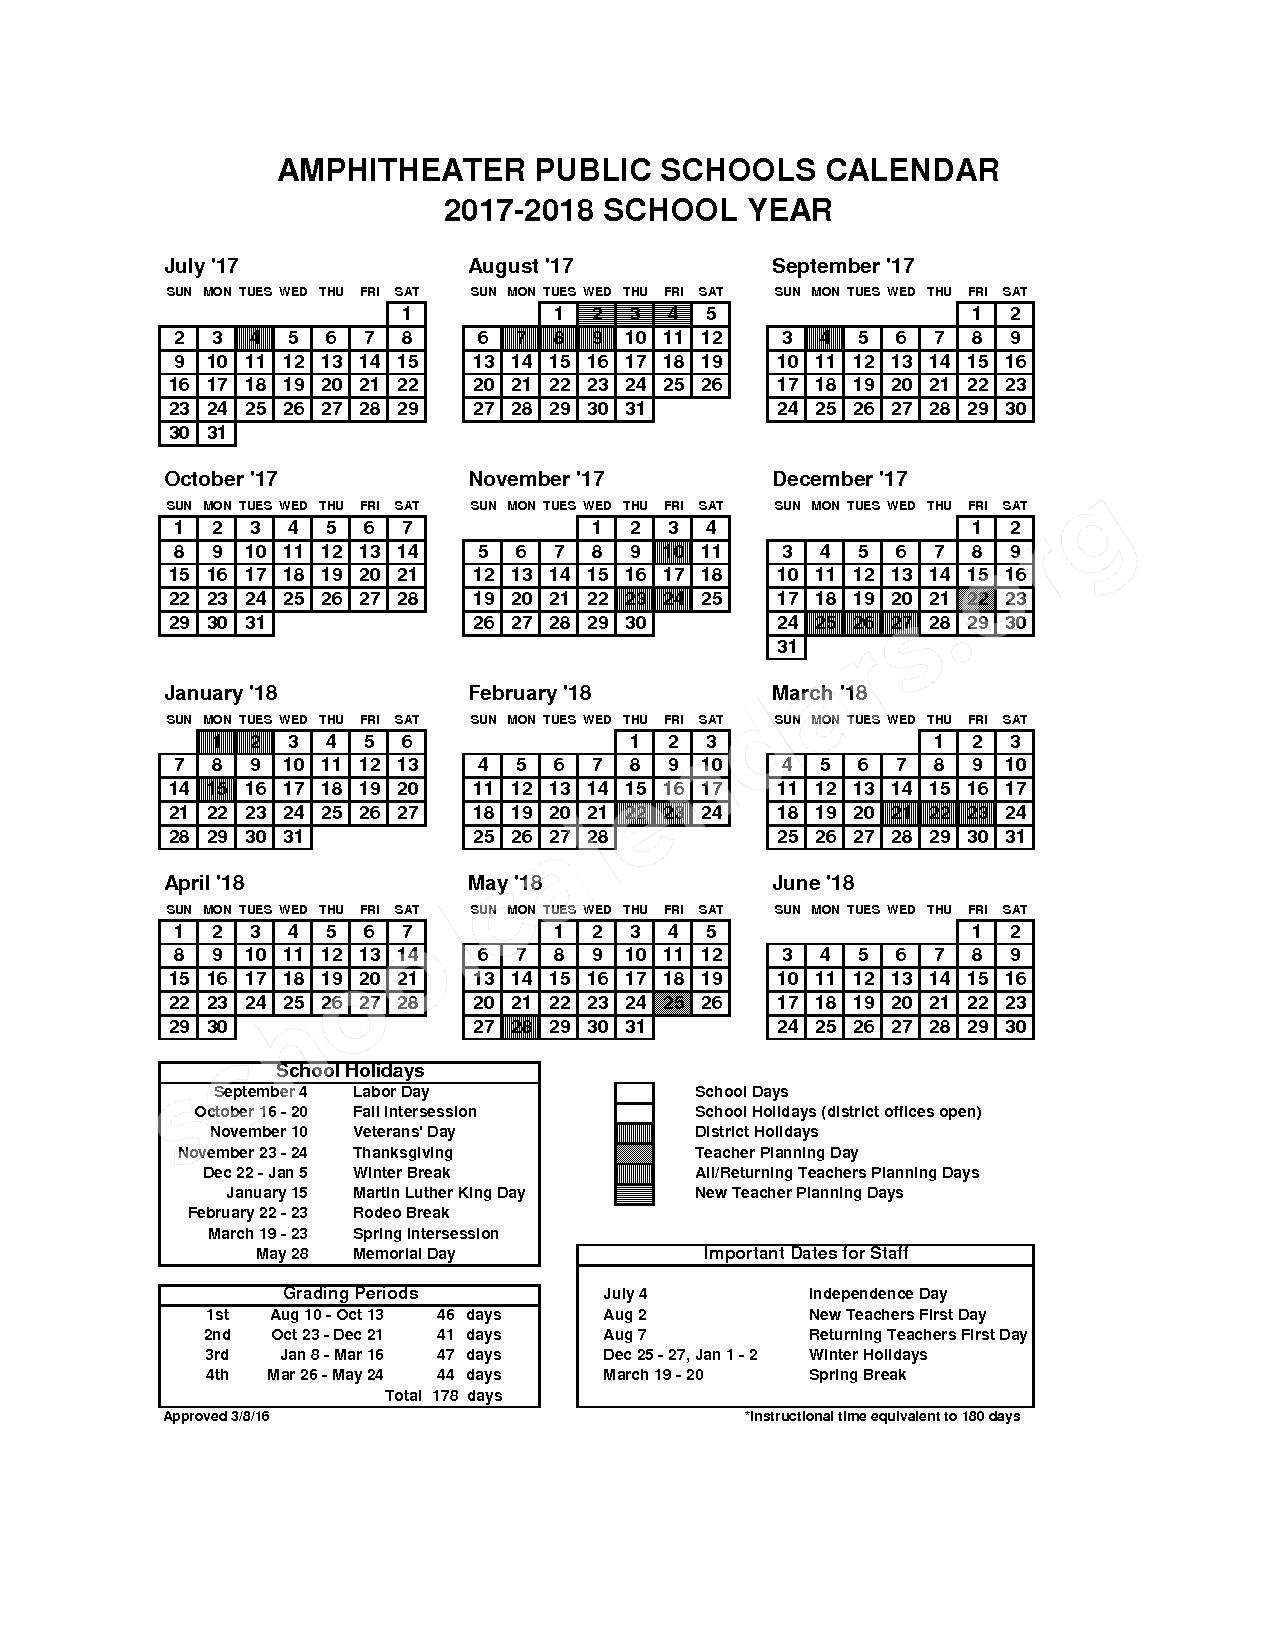 2017 - 2018 District Calendar (black & white) – Amphitheater Public Schools – page 1